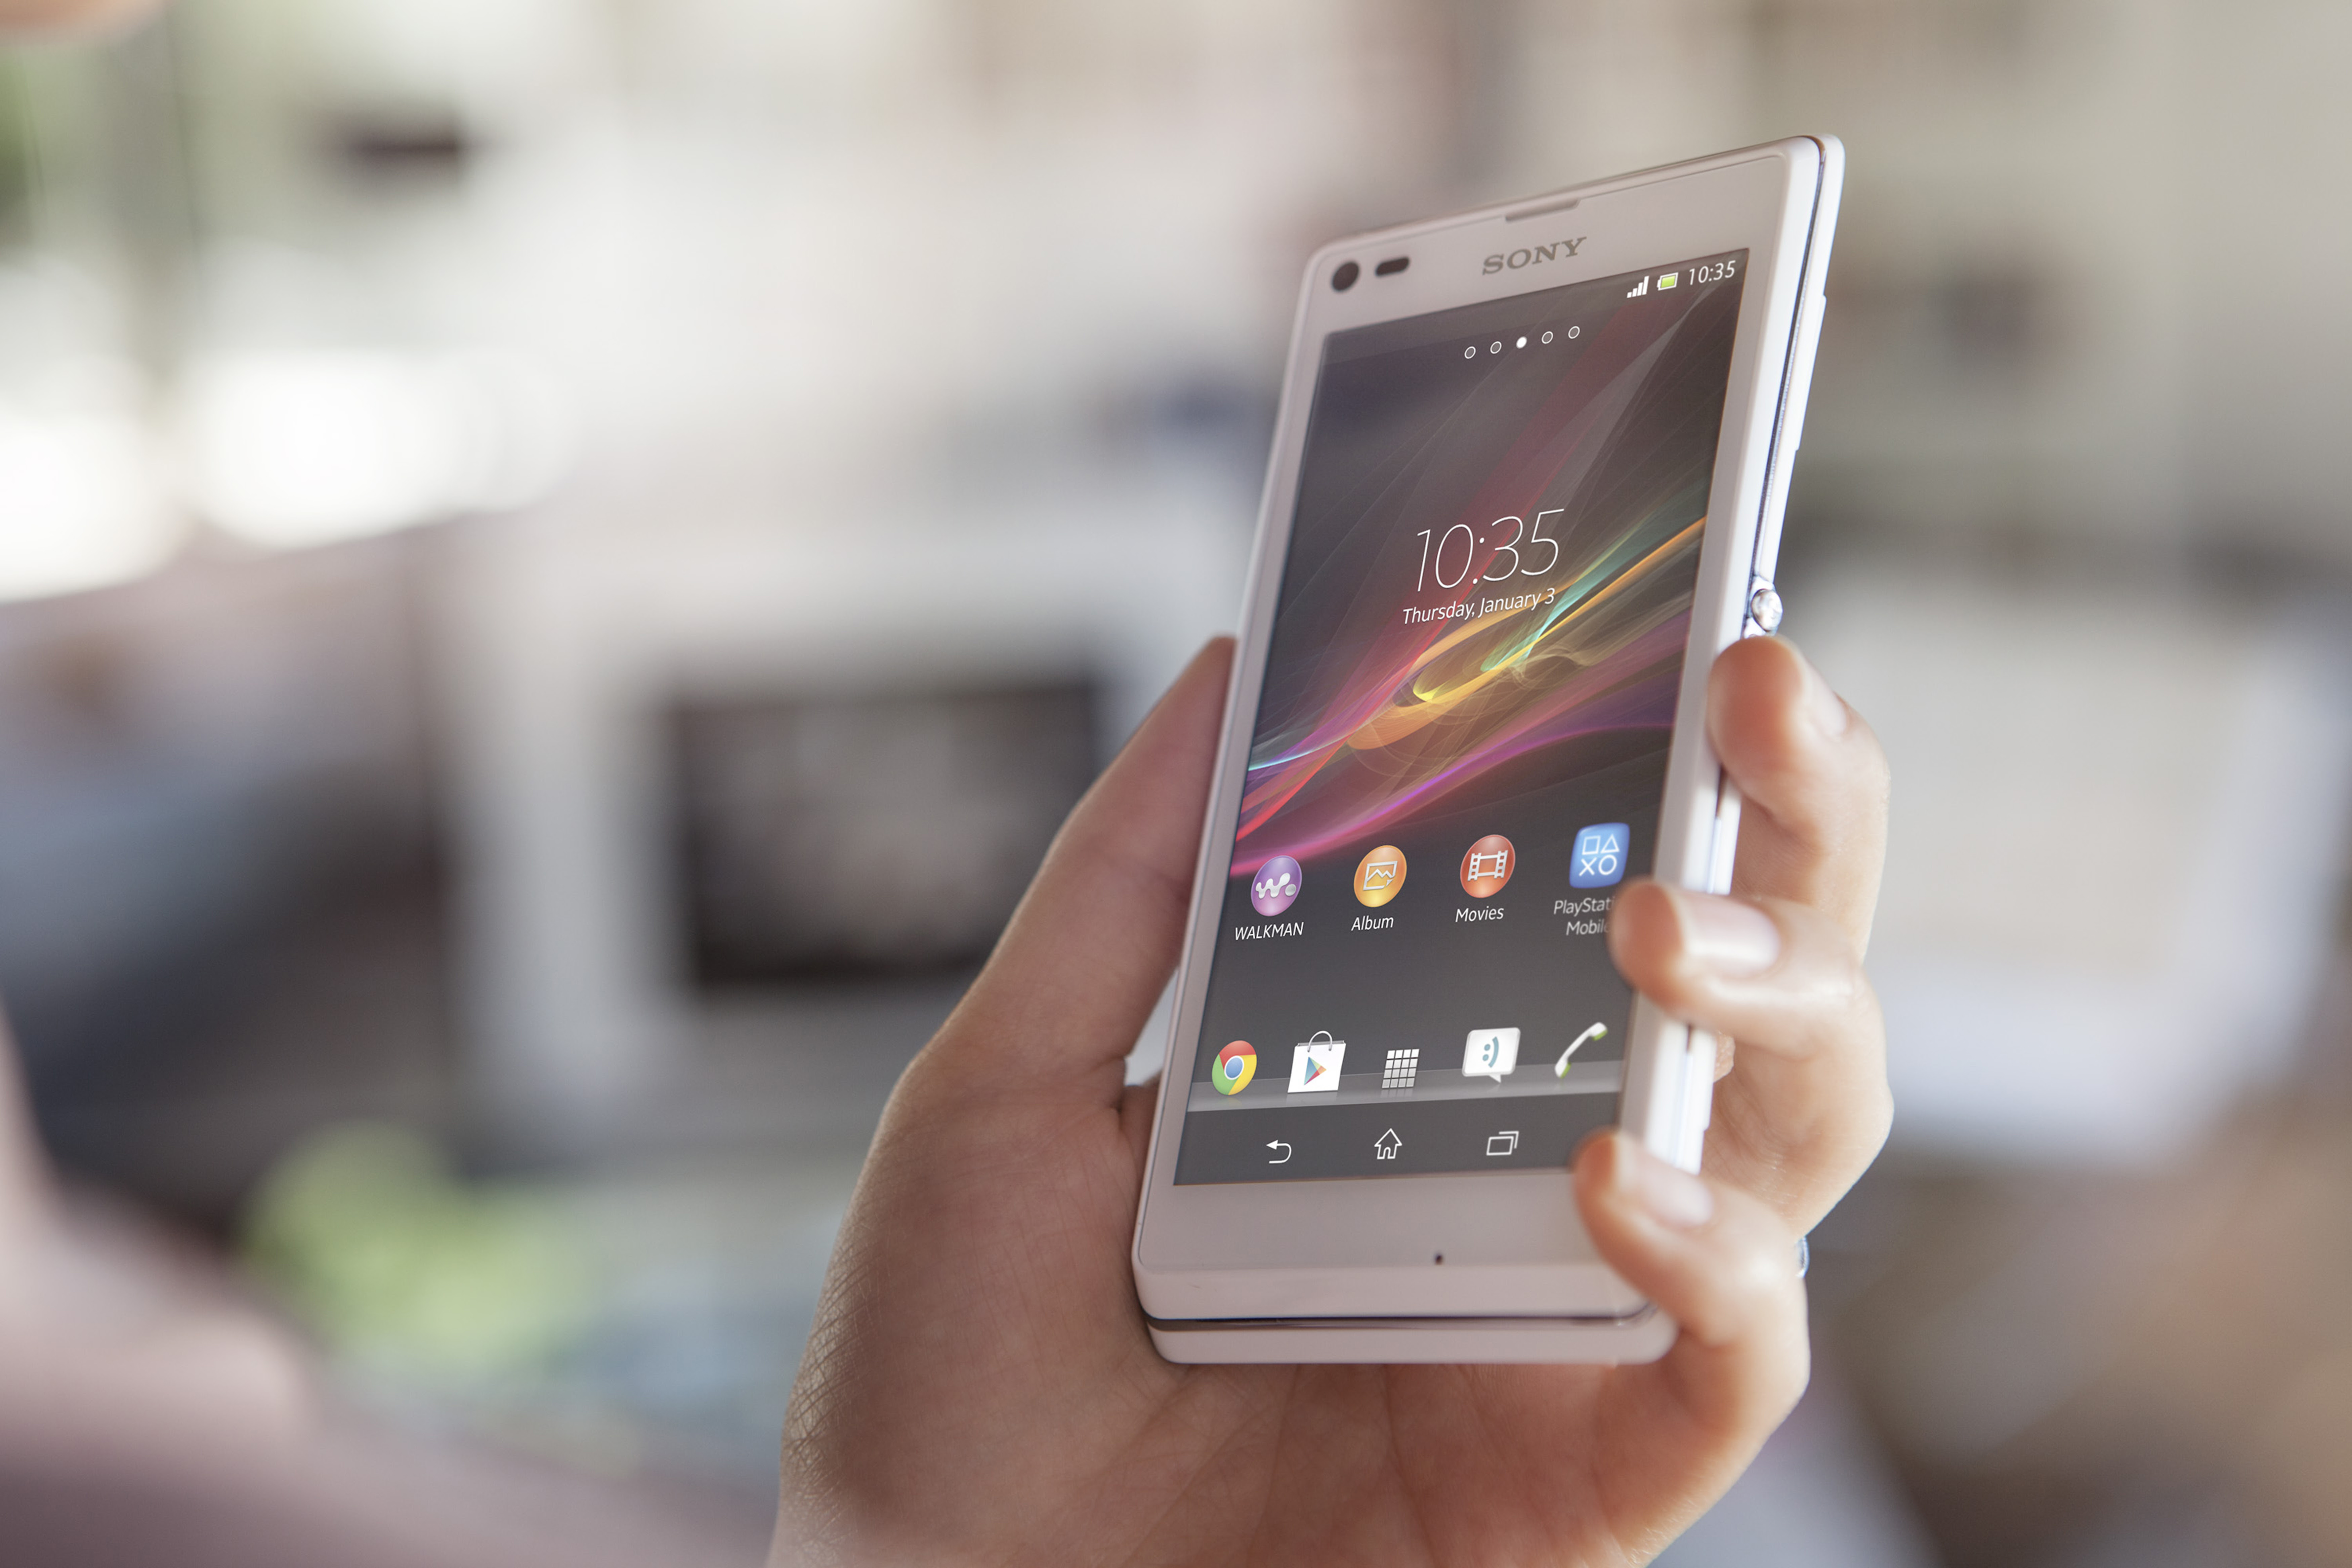 http://phandroid.com/wp-content/uploads/2013/03/sony-xperia-l.jpg